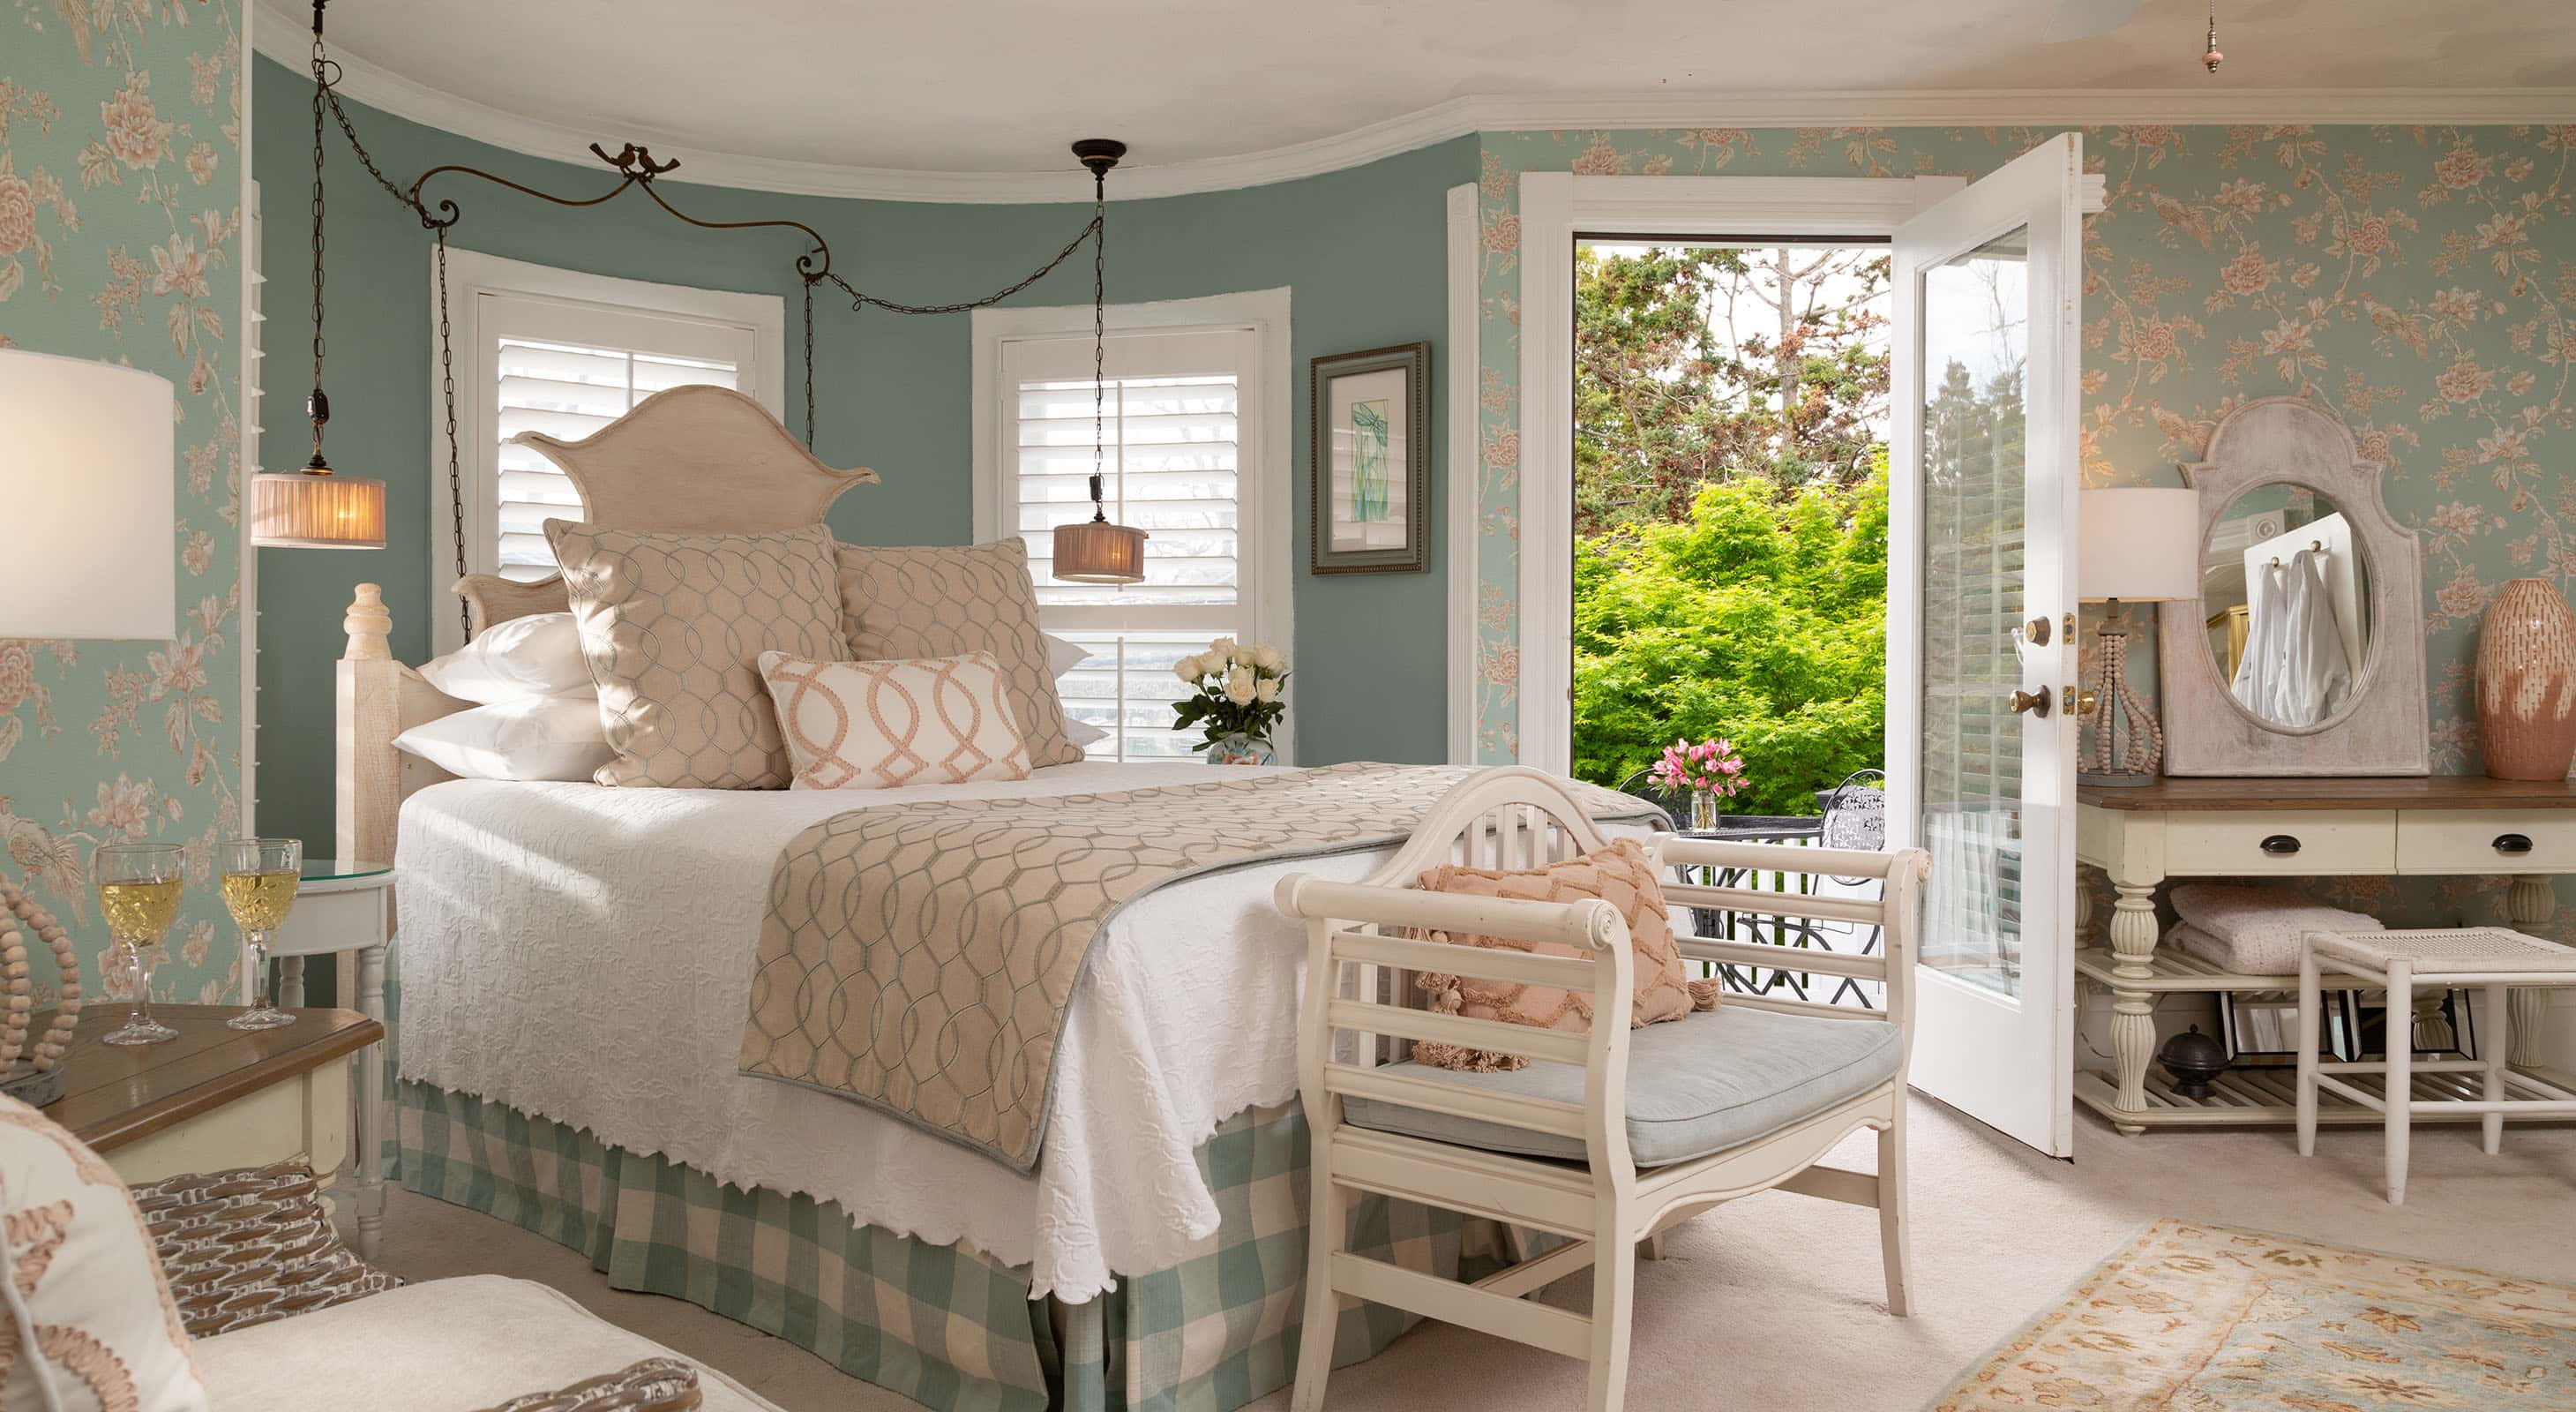 Spacious Queen Room with Private Balcony at Our Inn in Manteo NC